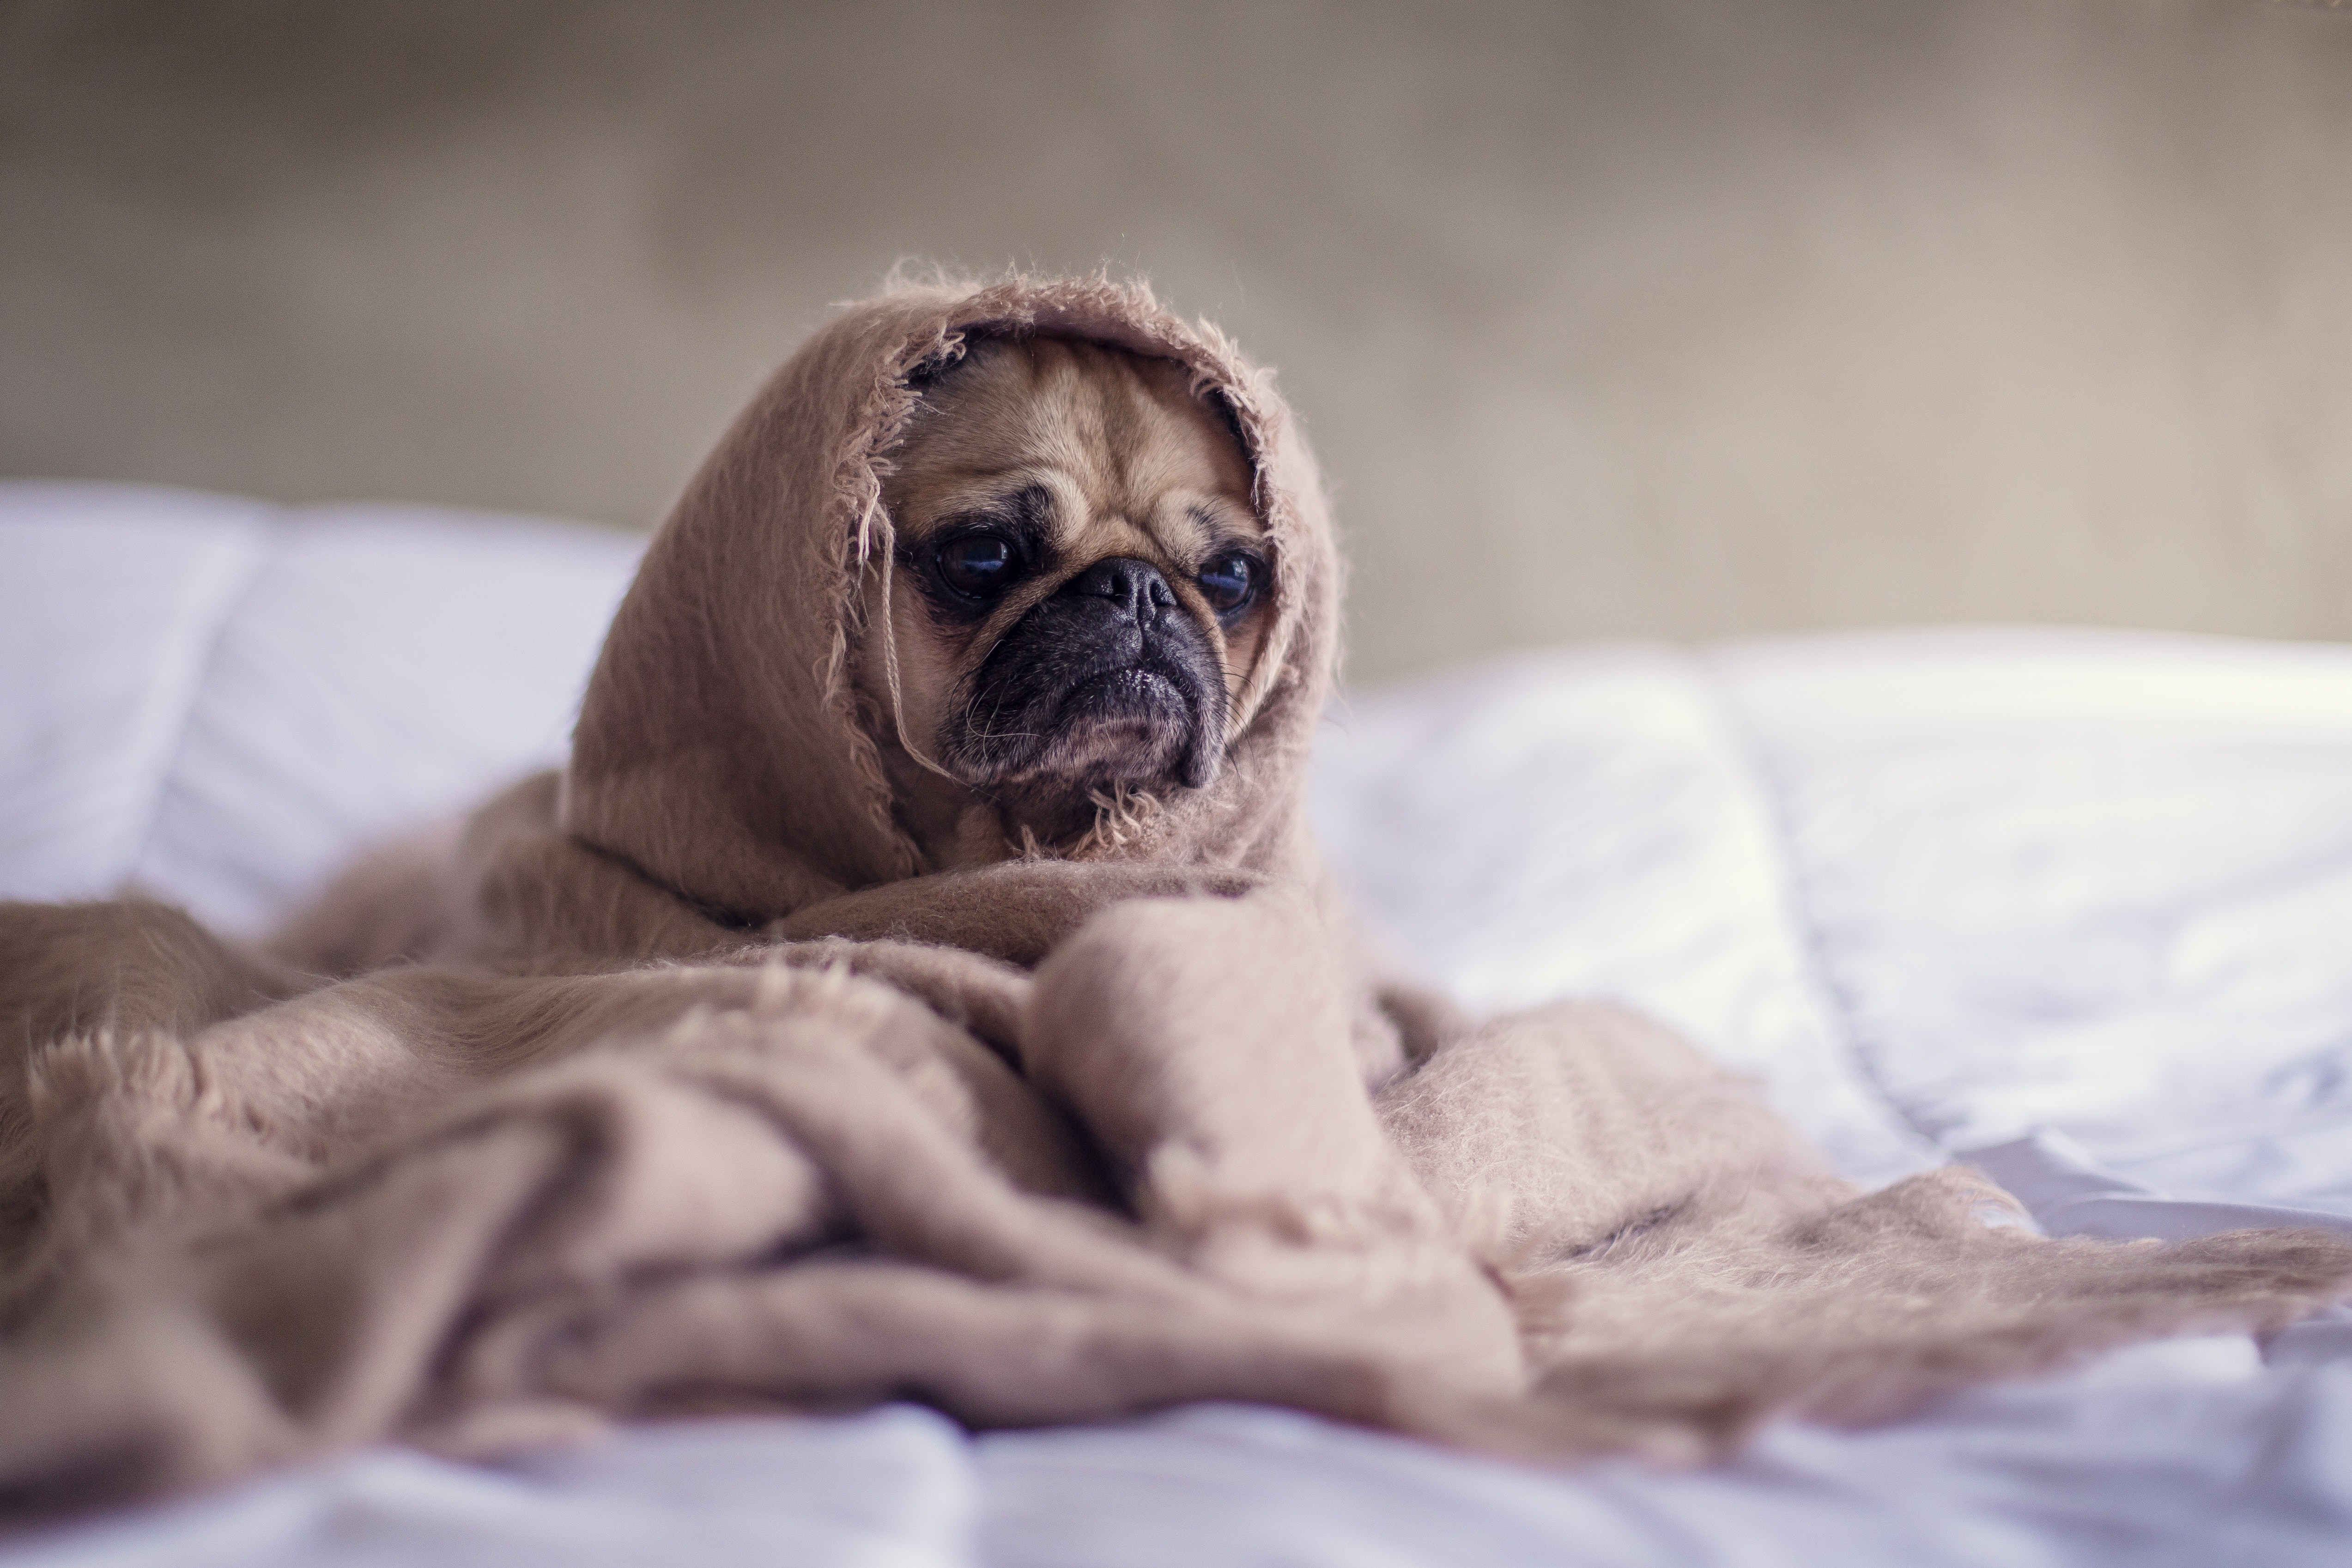 Sad pug wrapped in blanket